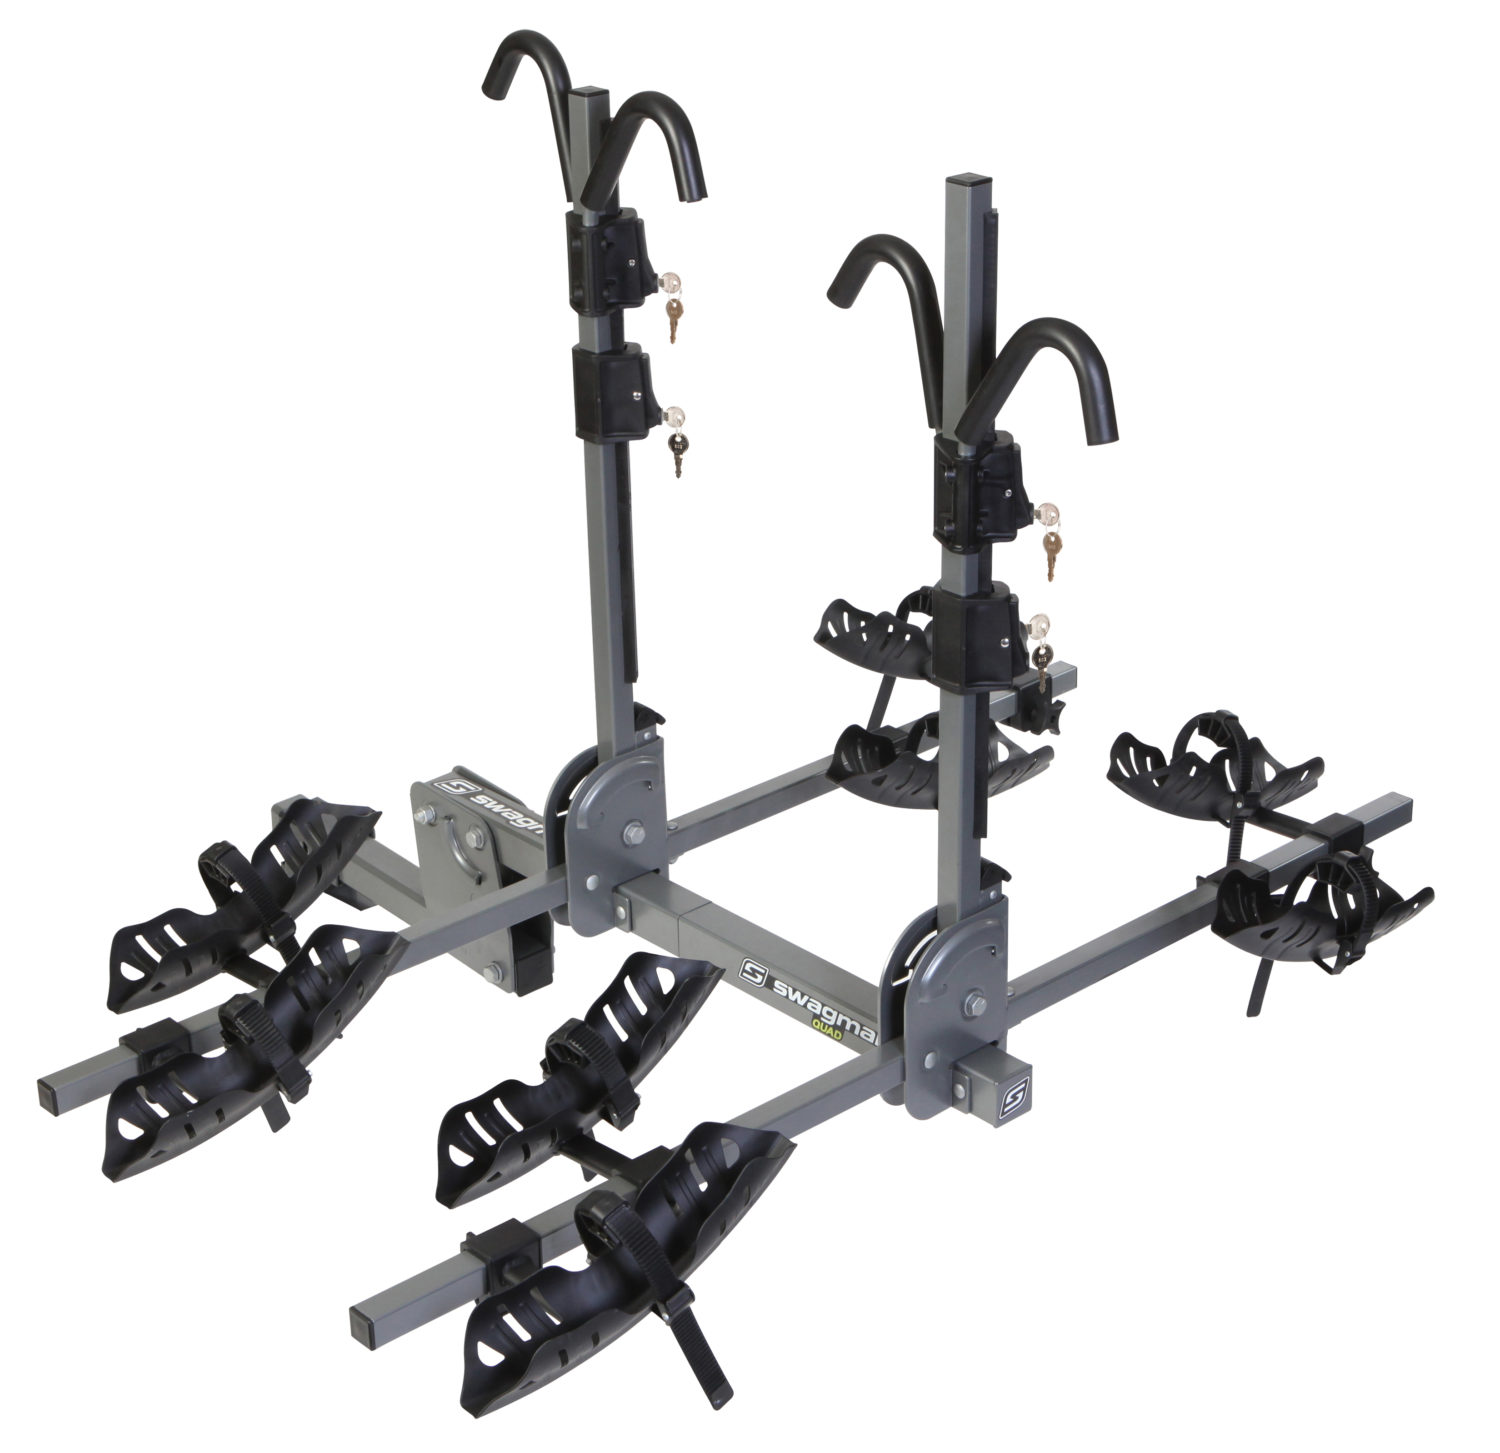 Quad 2 + 2 Bike Rack Hitch Mount